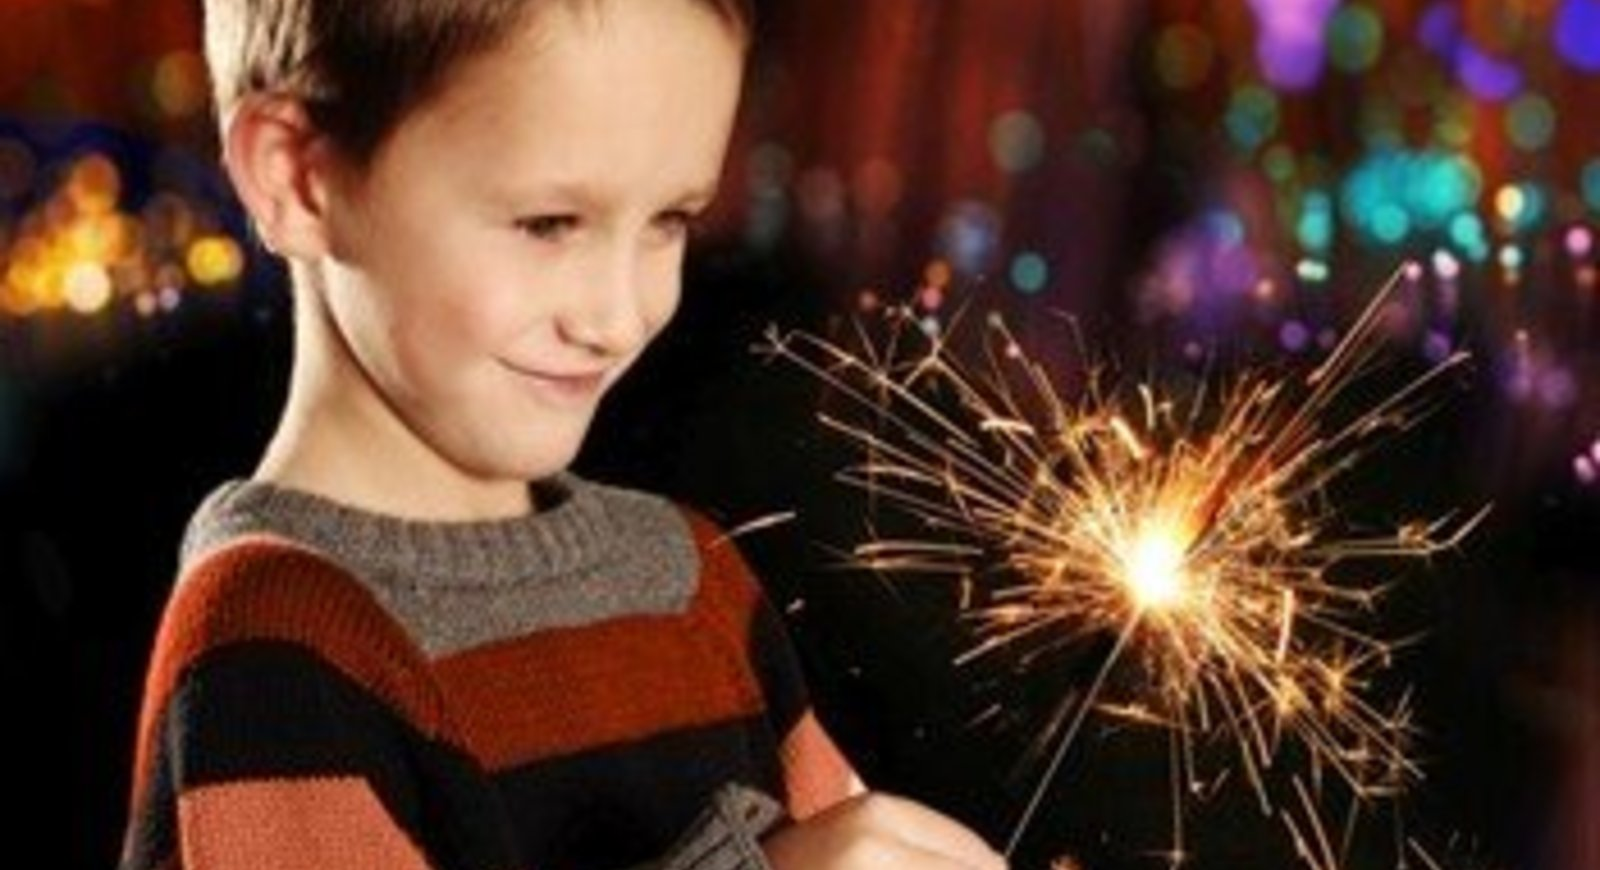 tips-for-an-autism-friendly-4th-of-july